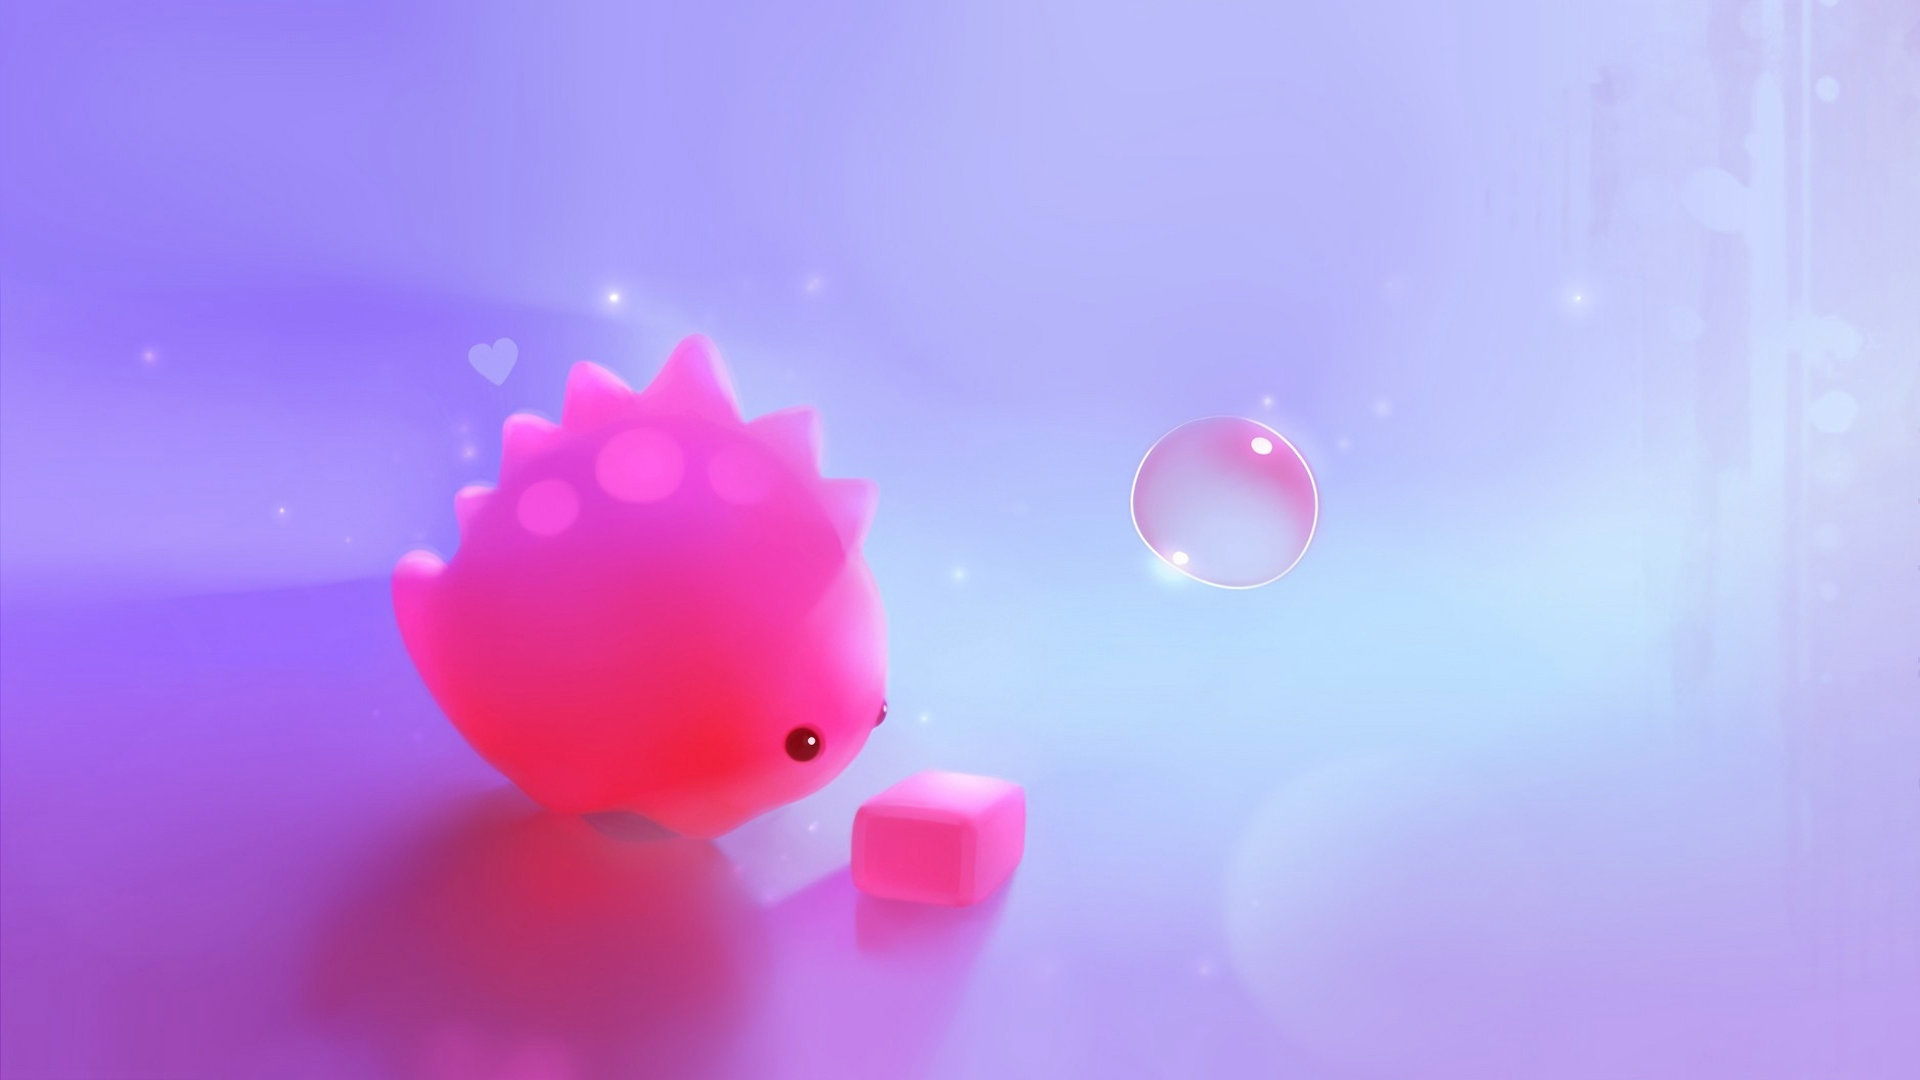 Pink Cute Wallpapers   HD Wallpapers Pretty 1920x1080